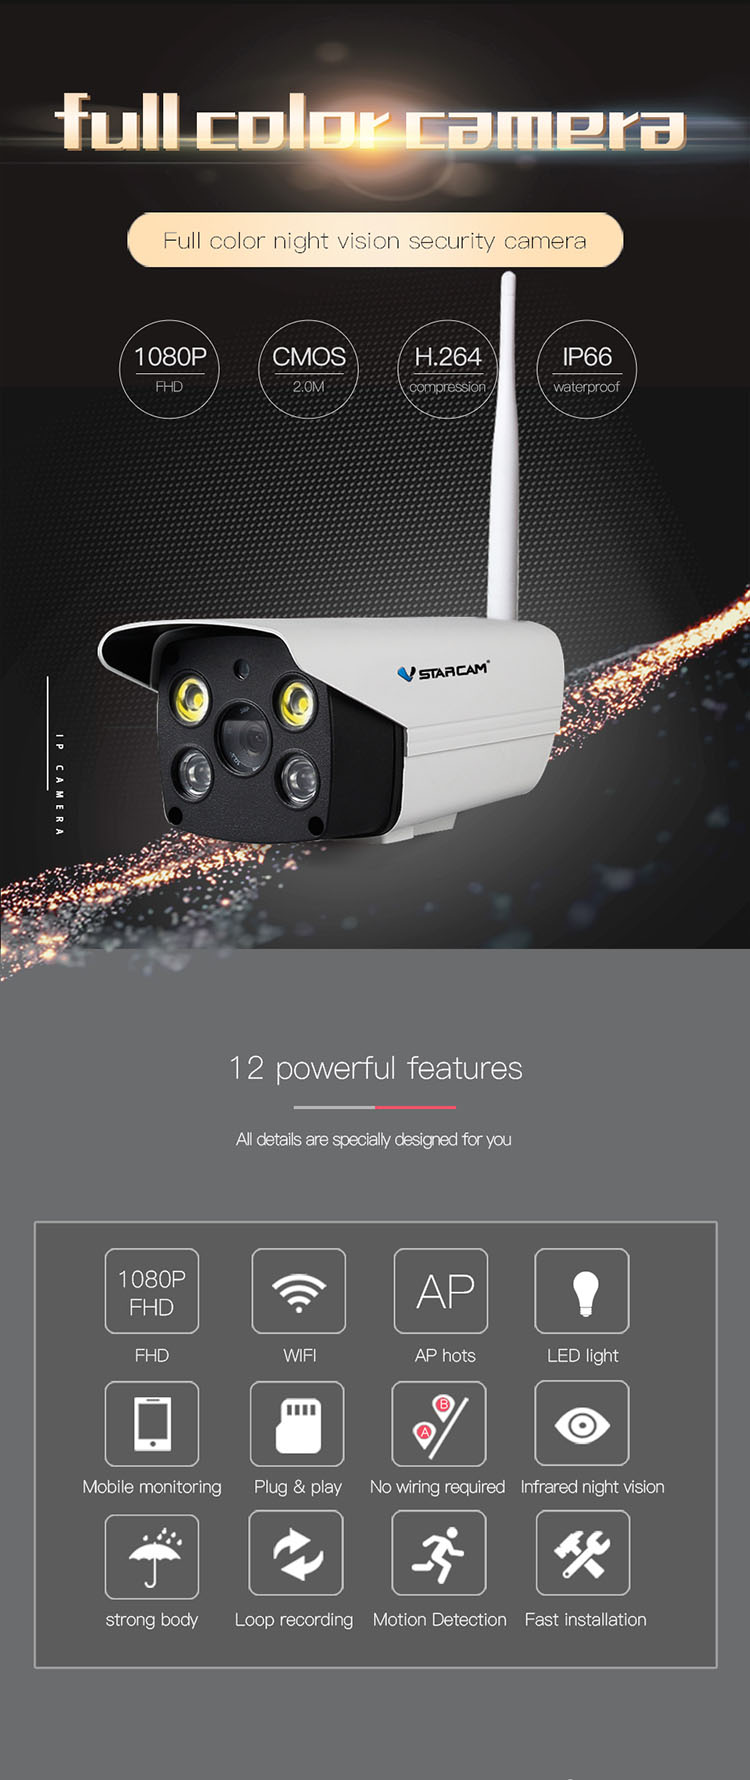 VSTARCAM IP66 outdoor wifi hidden ip camera